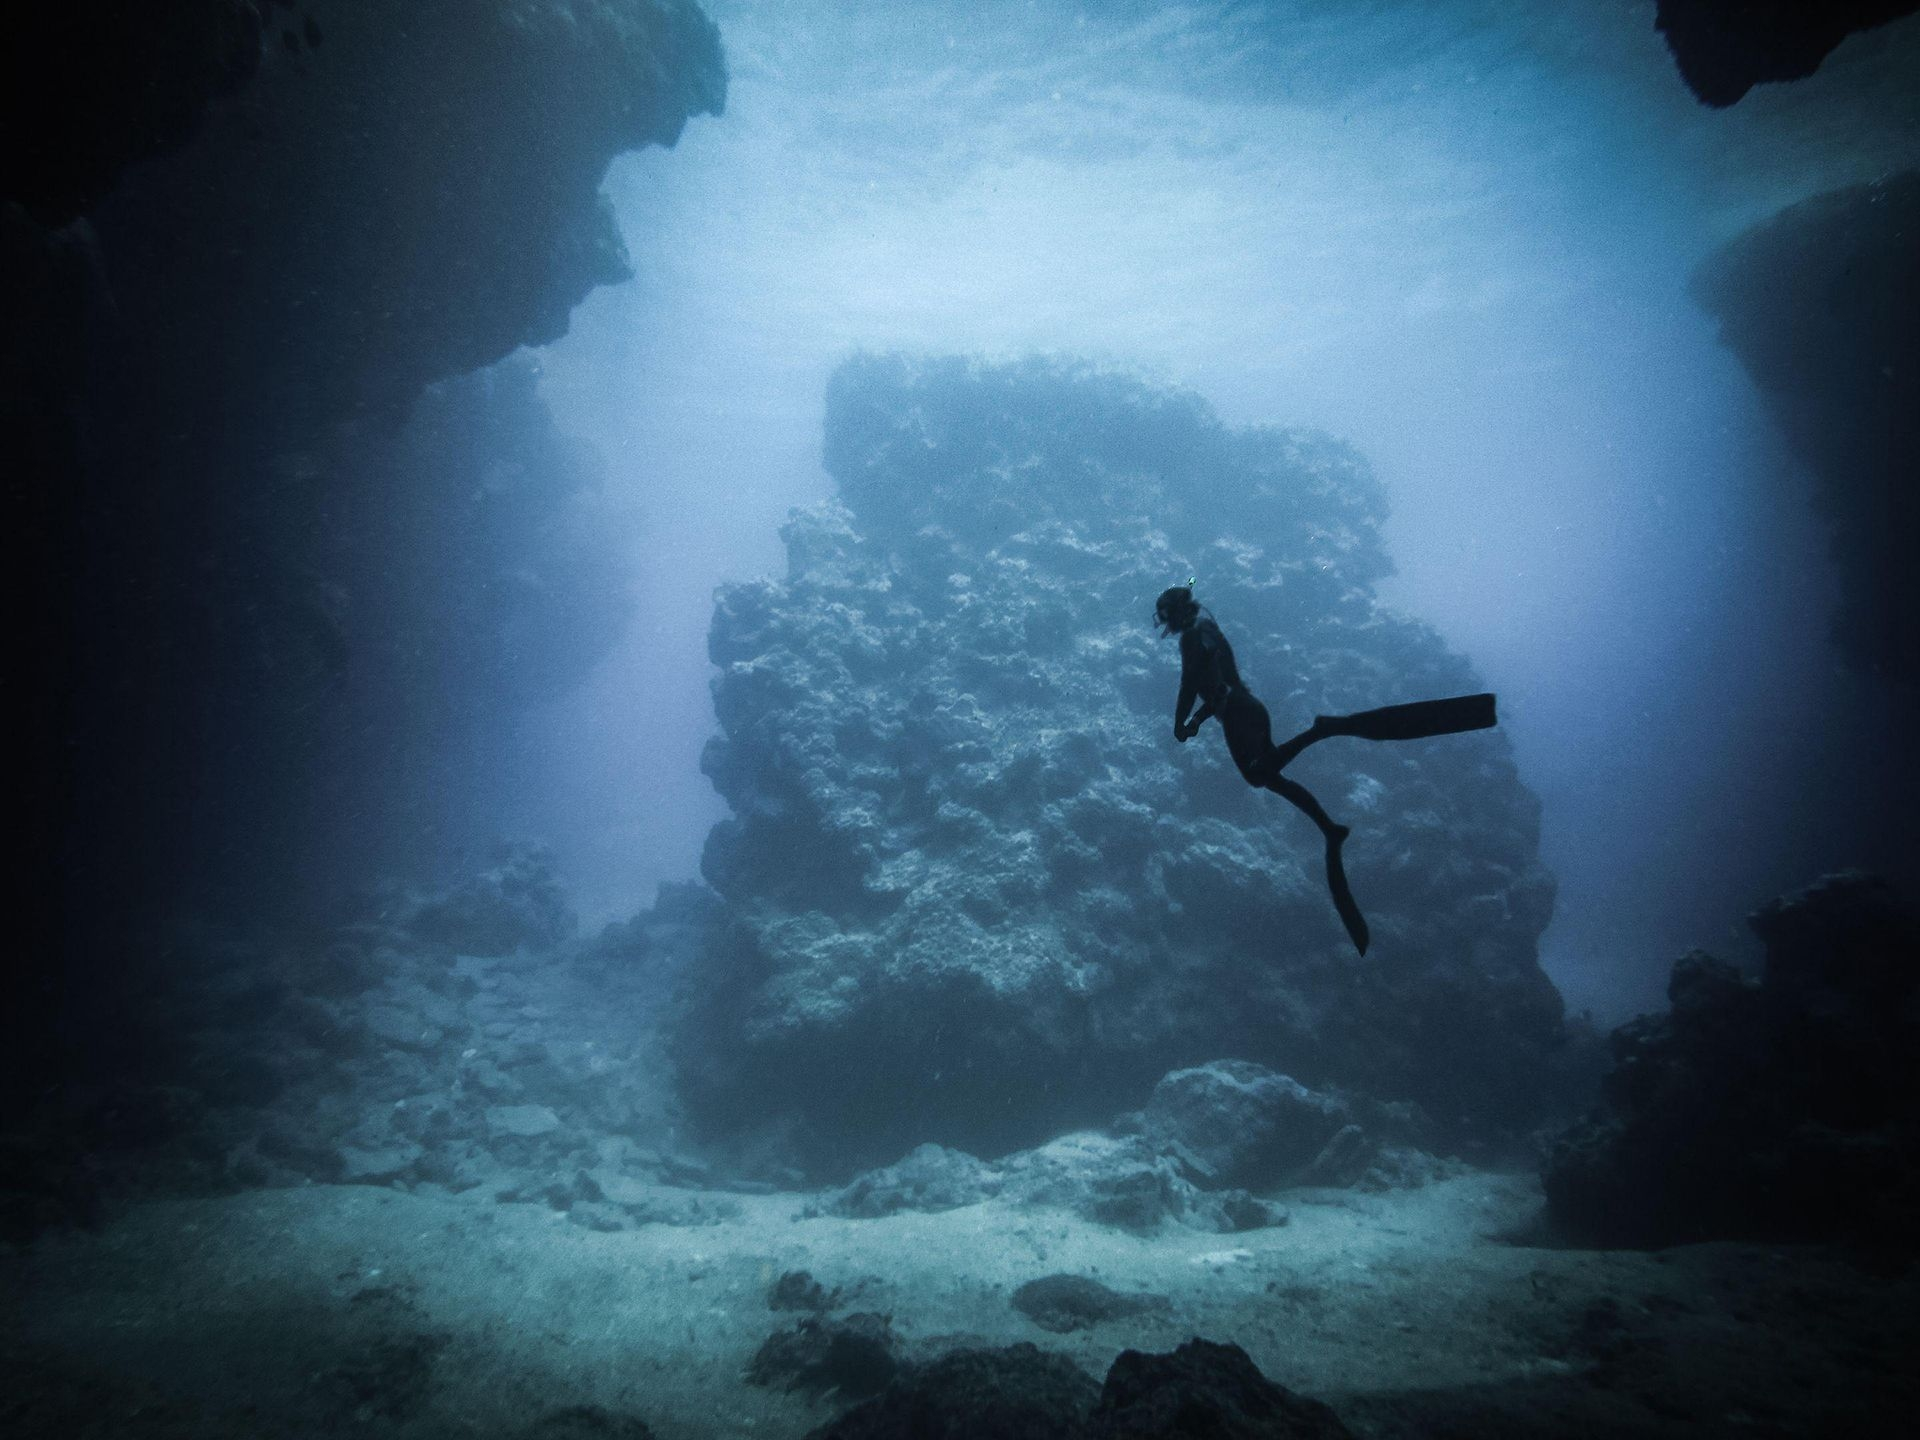 Photograph by chris sutherland, National Geographic Your Shot